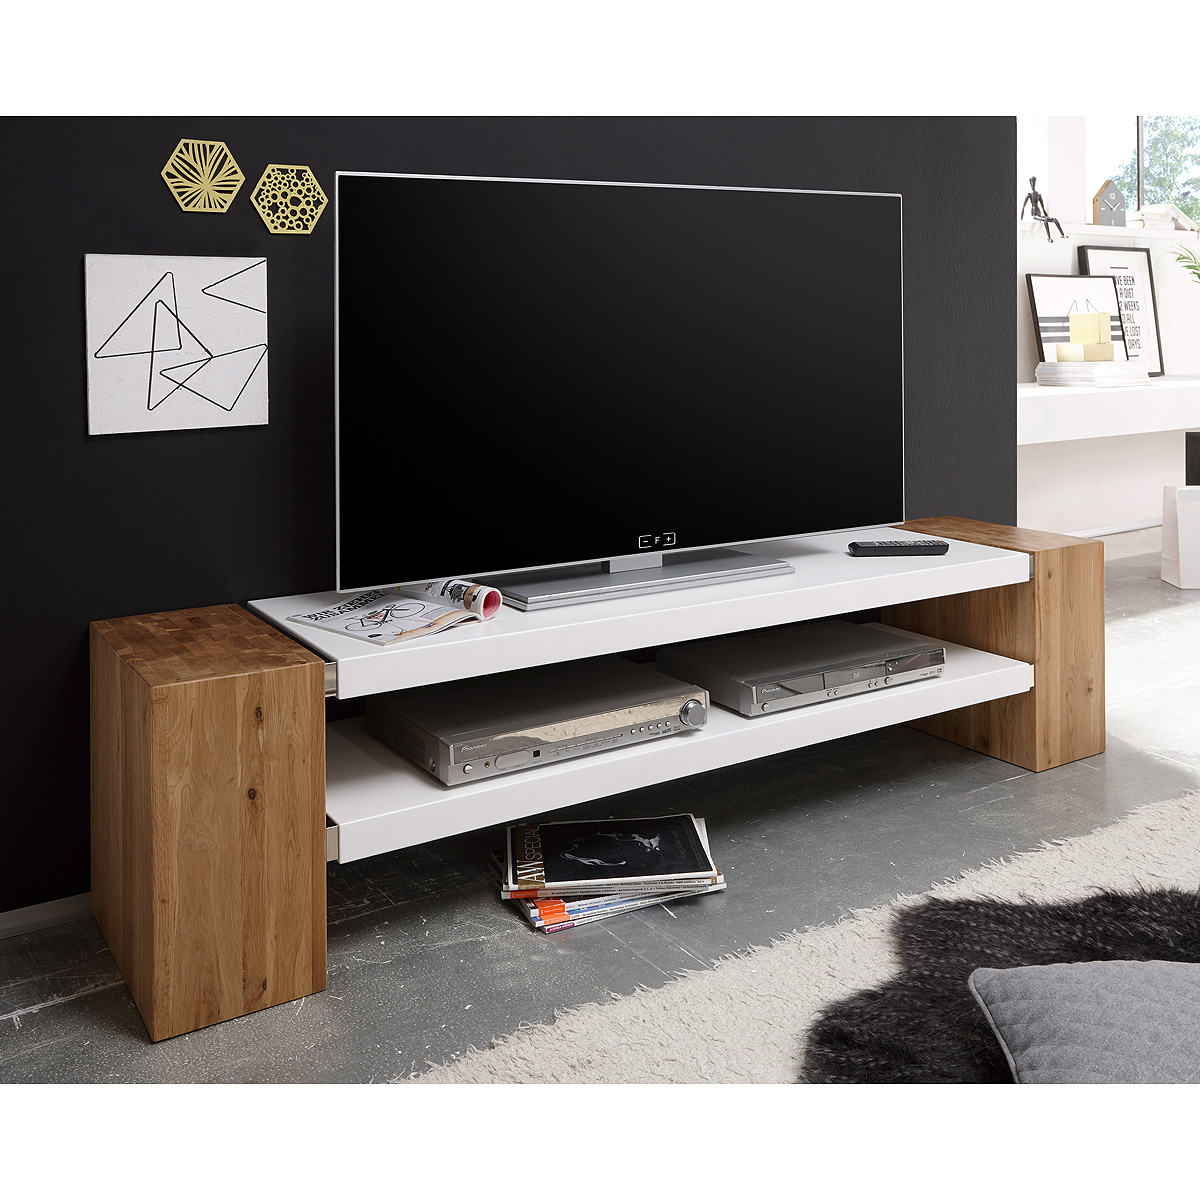 tv schrank mit r ckwand home image ideen. Black Bedroom Furniture Sets. Home Design Ideas